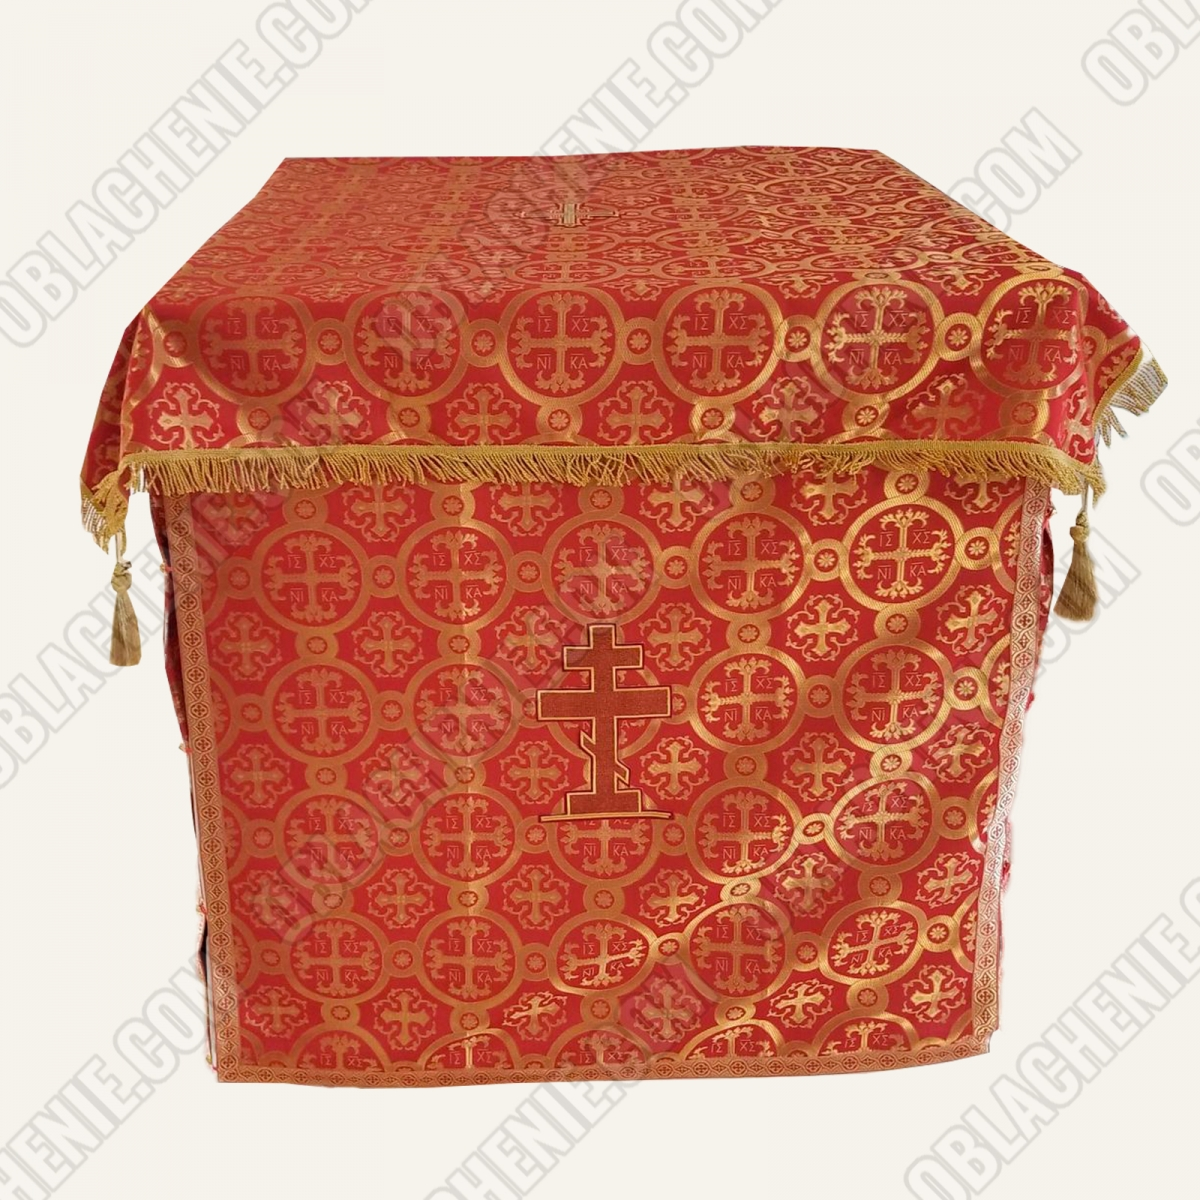 HOLY TABLE VESTMENTS 11203